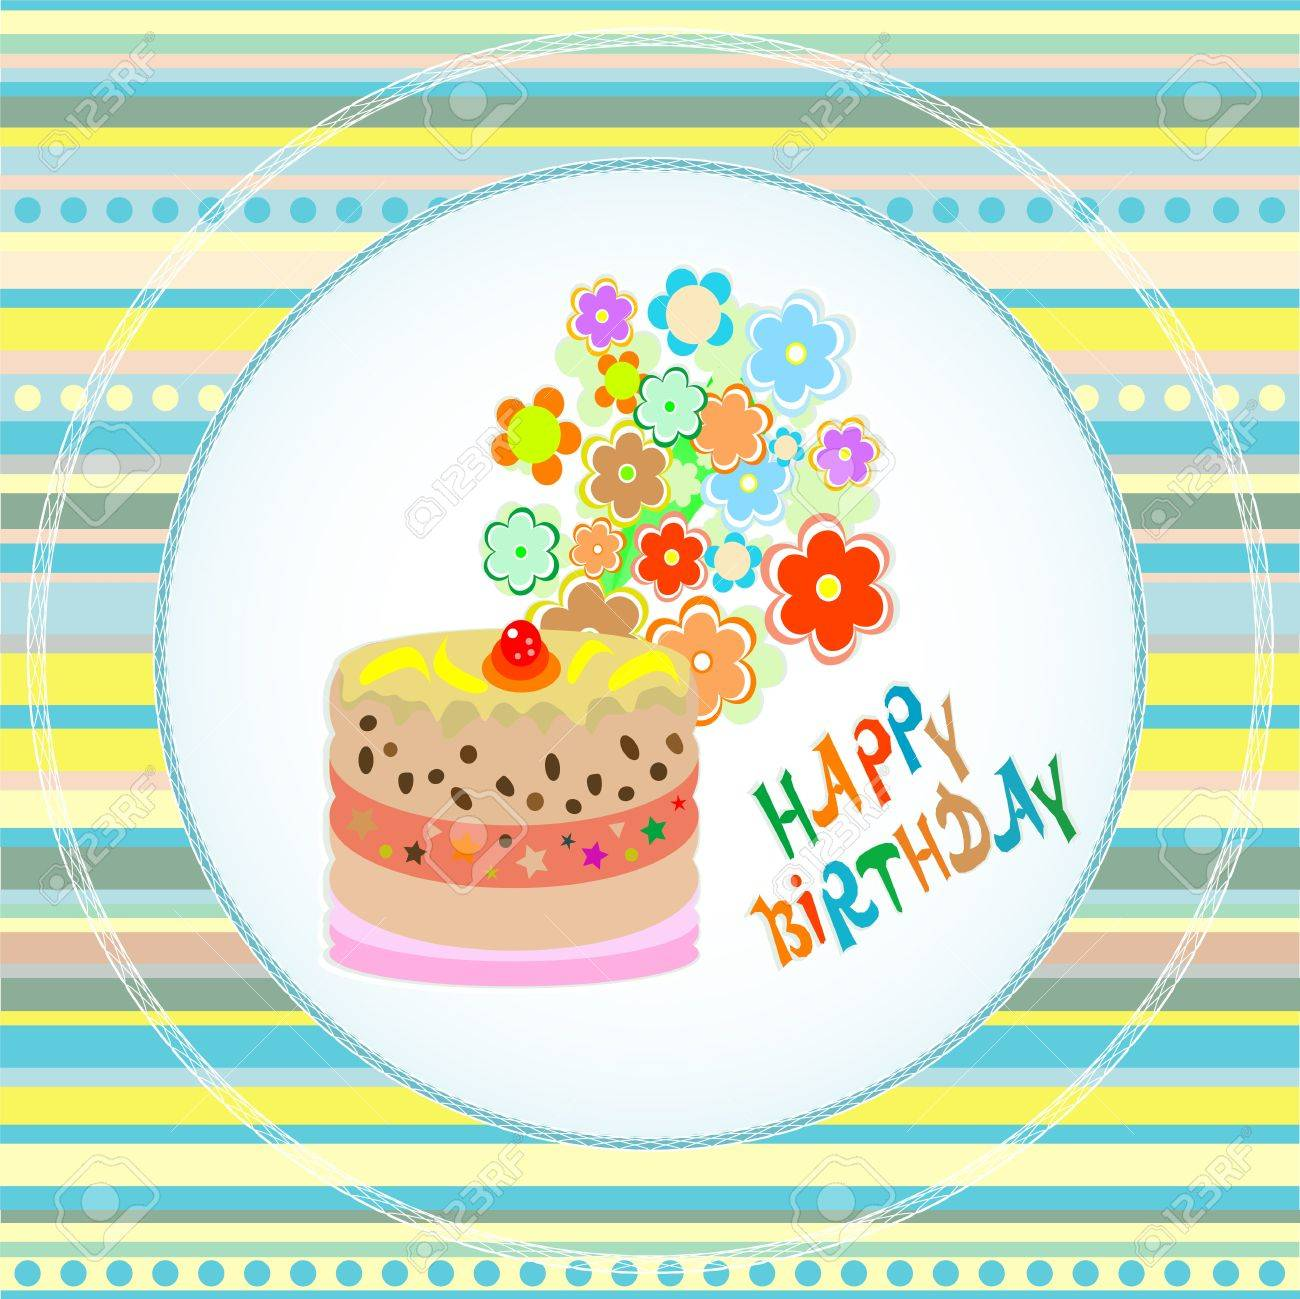 Happy birthday cakes flower design vector card royalty free happy birthday cakes flower design vector card stock vector 11535949 izmirmasajfo